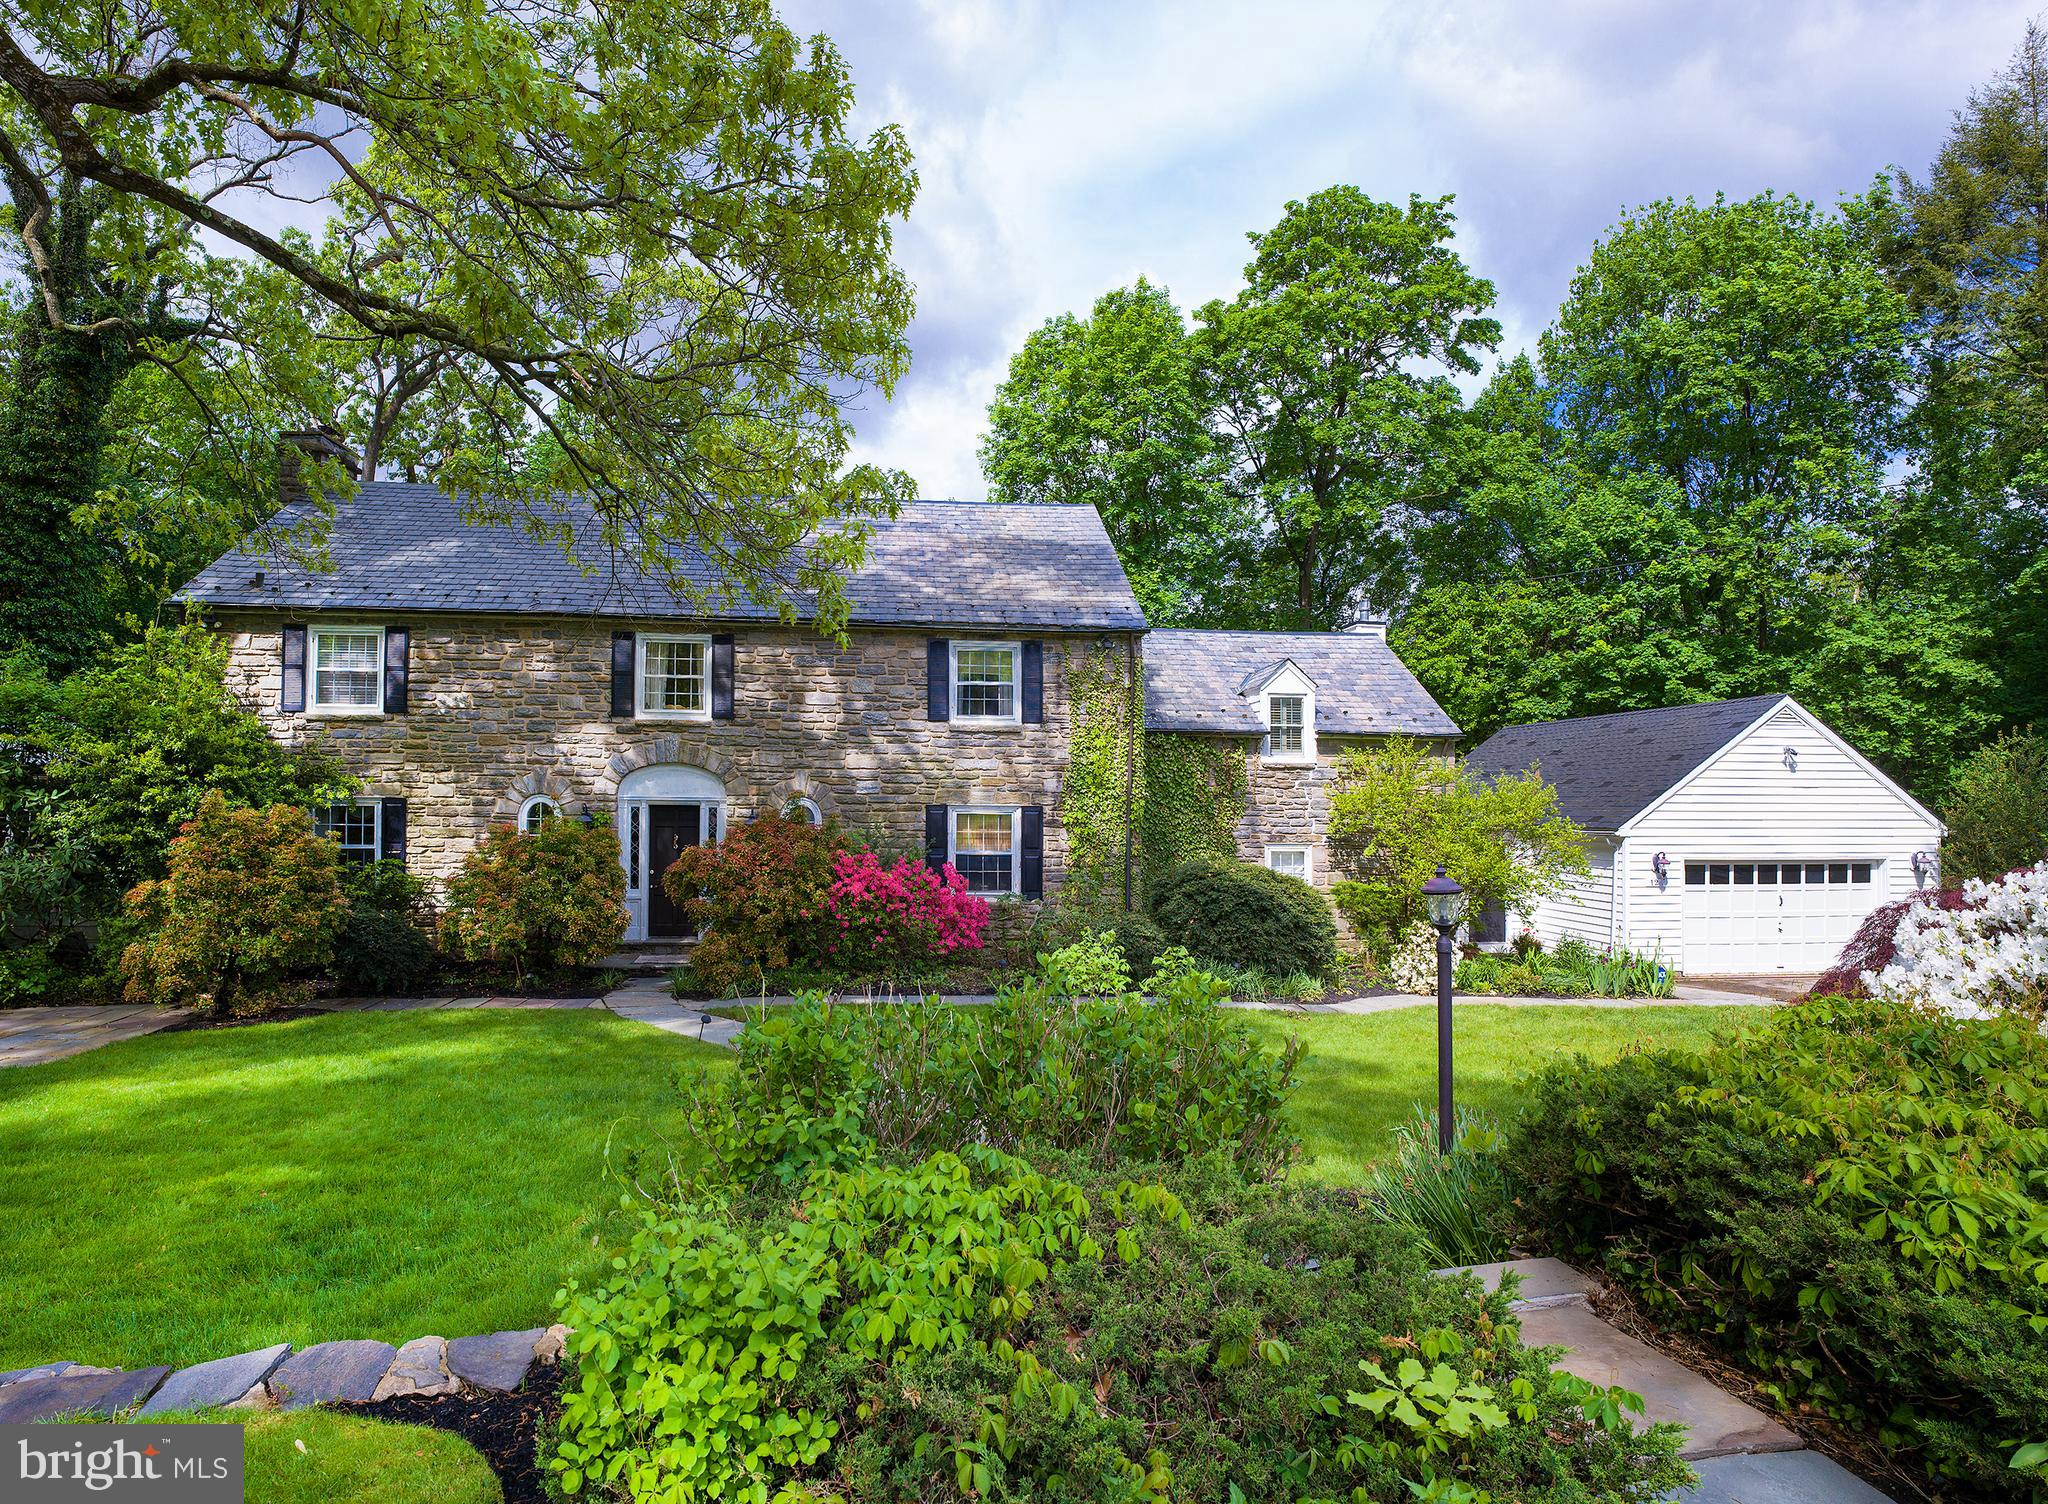 This gracious colonial in Bala Cynwyd welcomes your family home with a prime location on a private road on a quiet cul-de-sac of only eight residences. Its elegant exterior with slate roof makes a great first impression, while beautiful grounds and spacious patios provide a peaceful setting for outdoor enjoyment and entertaining. Inside is just as inviting, featuring generously-sized rooms, hardwood floors, large windows, glass French doors, and quality millwork.   Off the entry foyer sits a convenient powder room, handsome office for working remotely, and elegant living room with a wood-burning fireplace to gather around with loved ones or guests. From here you can read, relax and catch some rays in the enclosed sunroom enveloped by windows looking out at nature, or share formal meals together in the airy dining room with tasteful corner built-ins. Nearby is a light-filled open kitchen appointed with granite counters, a marble island with secondary sink, stainless steel appliances, and a sky-lit breakfast area for snacks and morning coffee.   A step-down open family room adjoins, offering a comfortable, relaxing setting with a gas fireplace and built-ins. Glass-paneled doors from both the kitchen and family room lead to the expansive rear patio for easy indoor-outdoor living. A large mudroom completes this level affording access to the front and back of the house, as well as the oversized 2-car garage.   Upstairs, a lovely landing with built-in sitting area greets you and proceeds to the sleeping quarters. The primary bedroom is the highlight of course, with a brand new deck, 2 walk-in closets, and en-suite bath with 2 sinks and refreshing rain head shower. An additional bedroom with walk-in closet, 2 more bedroom suites, and a laundry room with cedar closet also occupy the 2nd level. Topping the homes appeal is abundant closet space, a partially finished basement with powder room, central air, security system, and prime location in the award-winning Lower Merion S